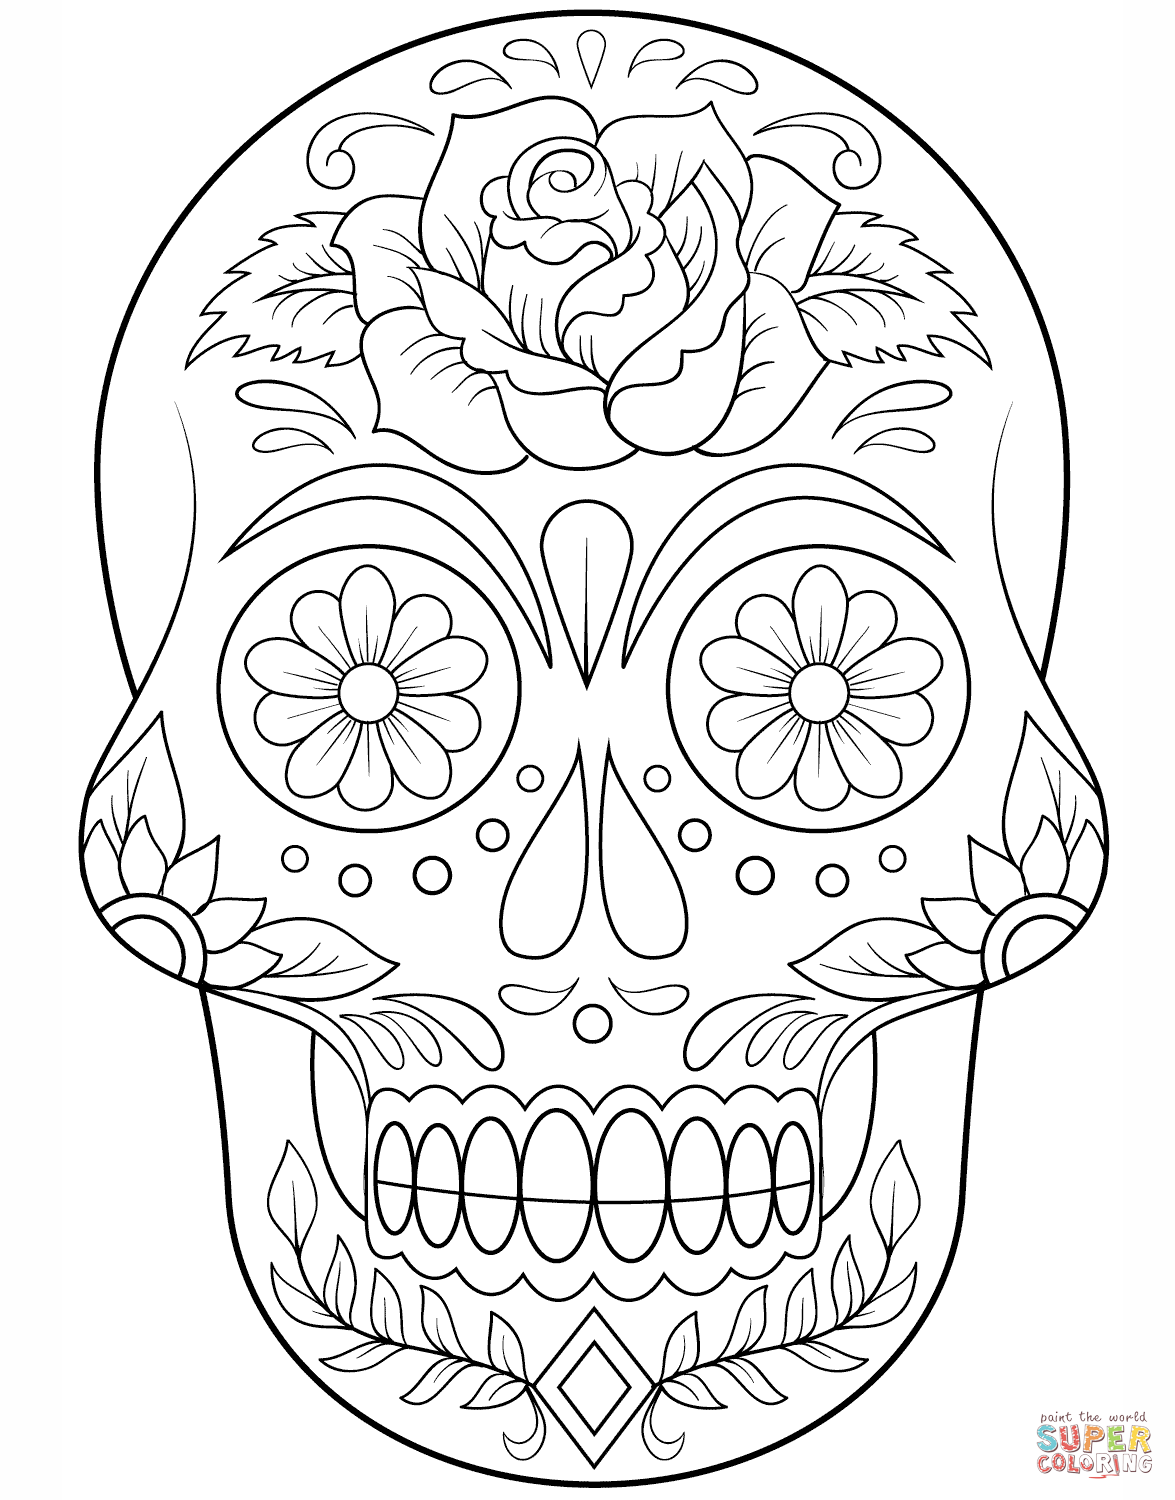 Sugar Skull With Roses Coloring Pages - Coloring Home